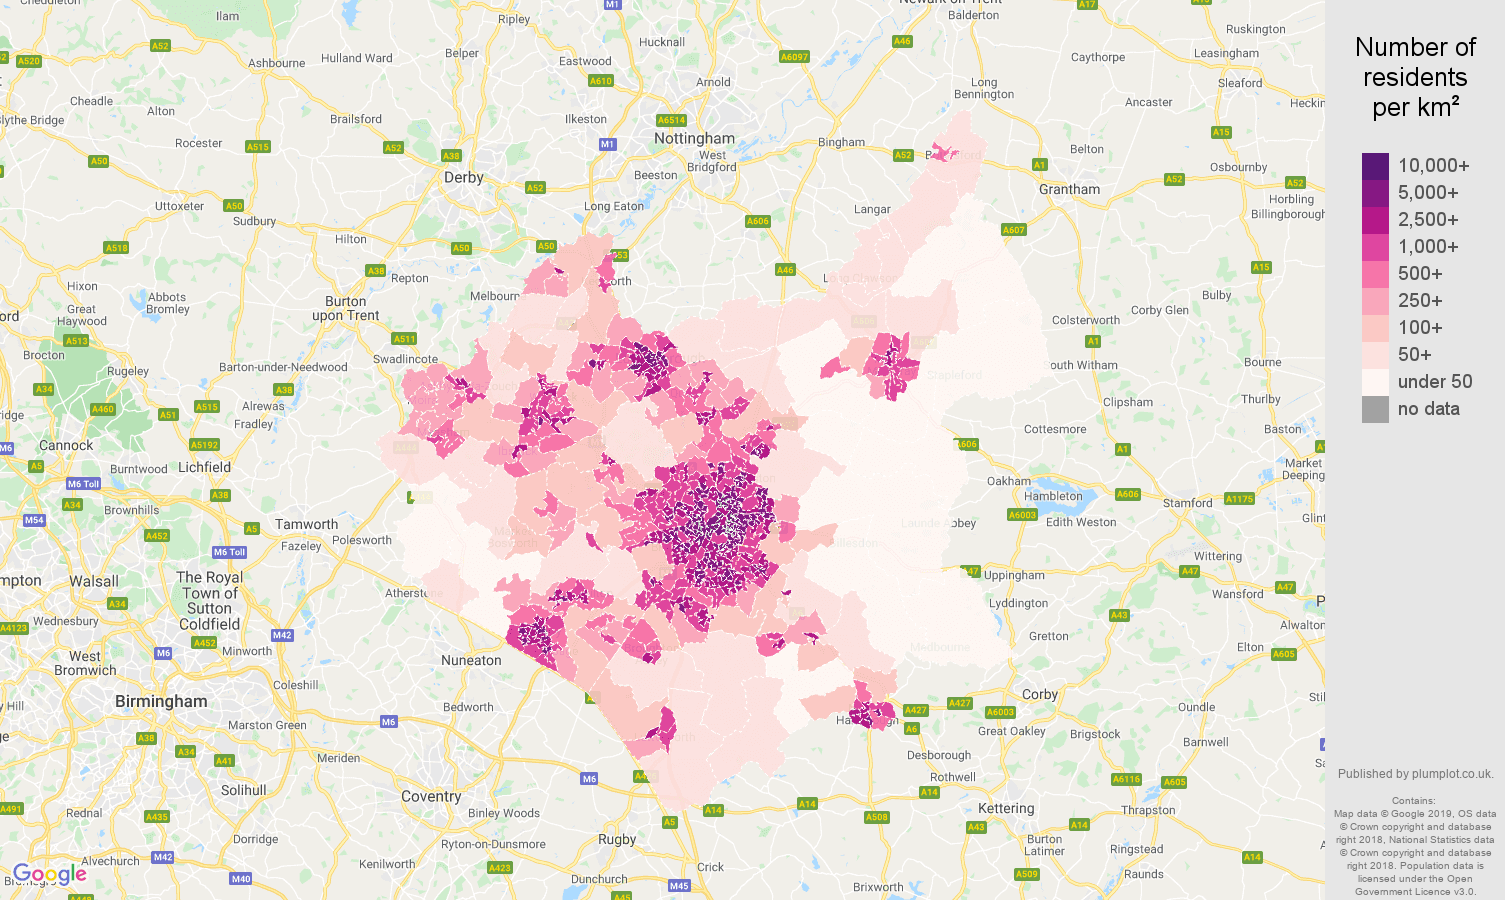 Leicestershire population density map